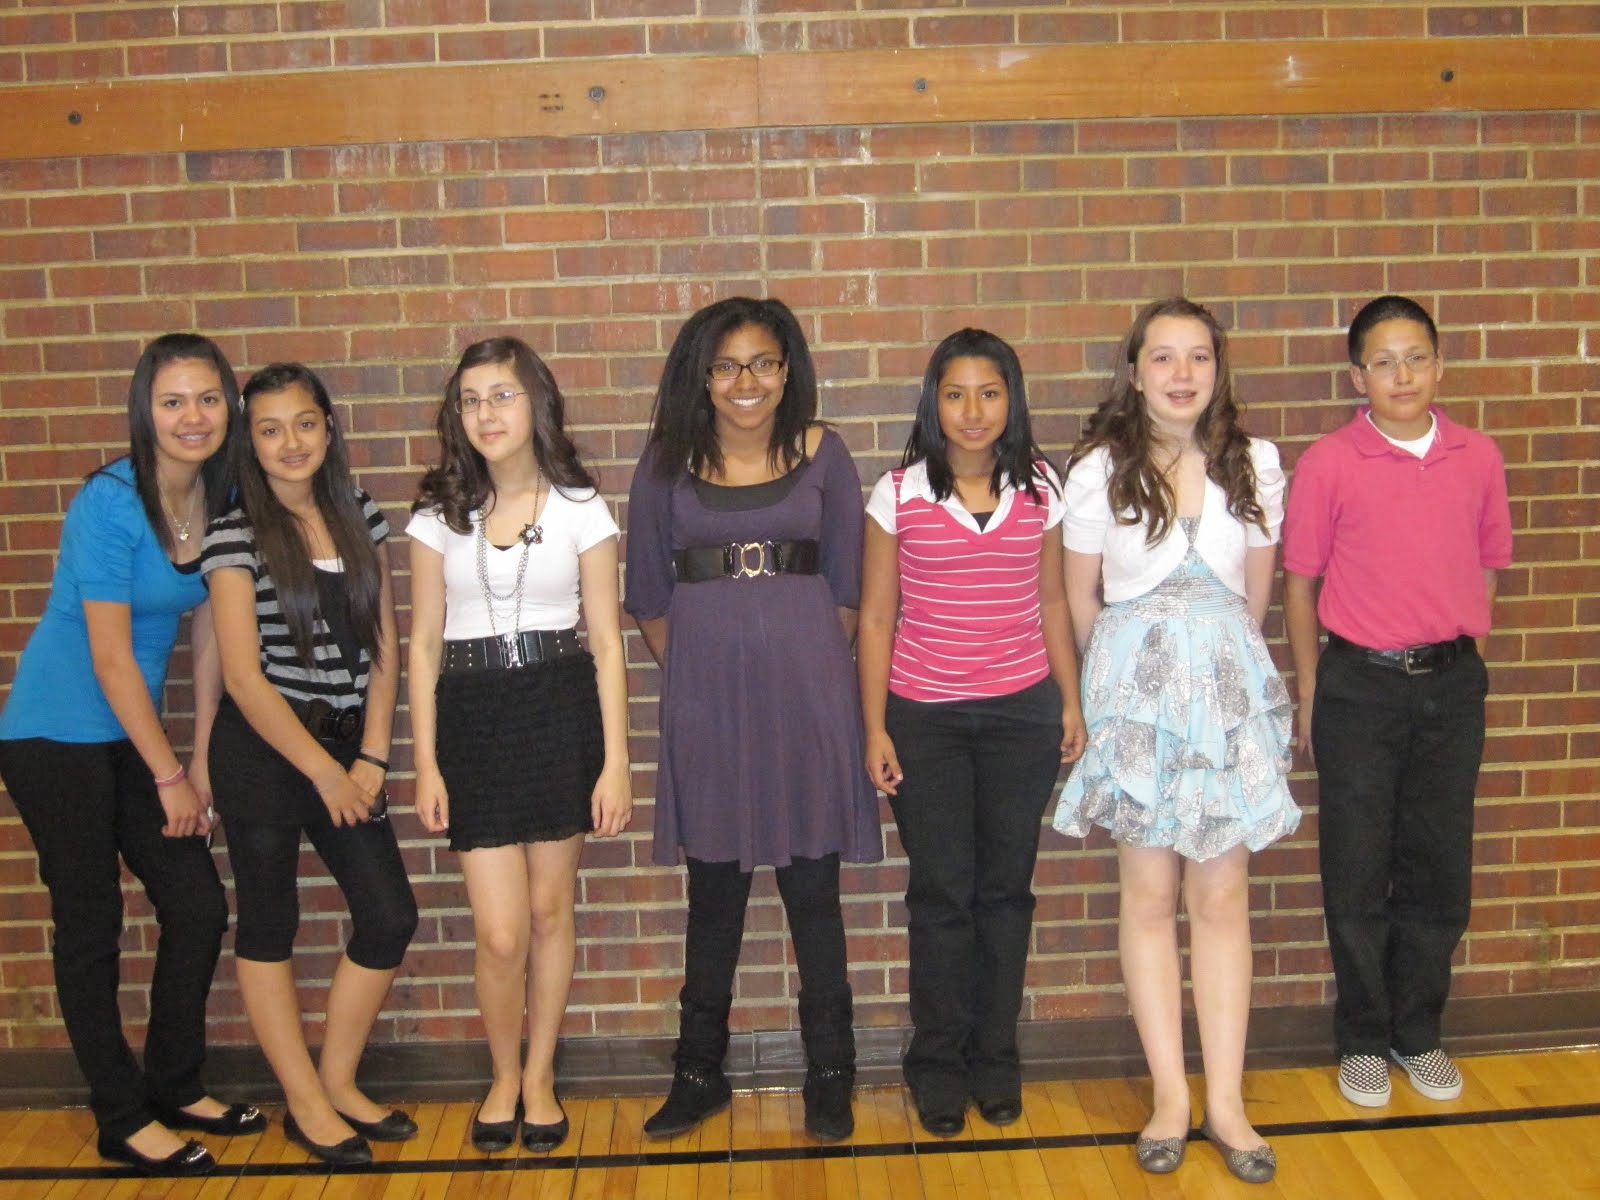 7th graders picture 86